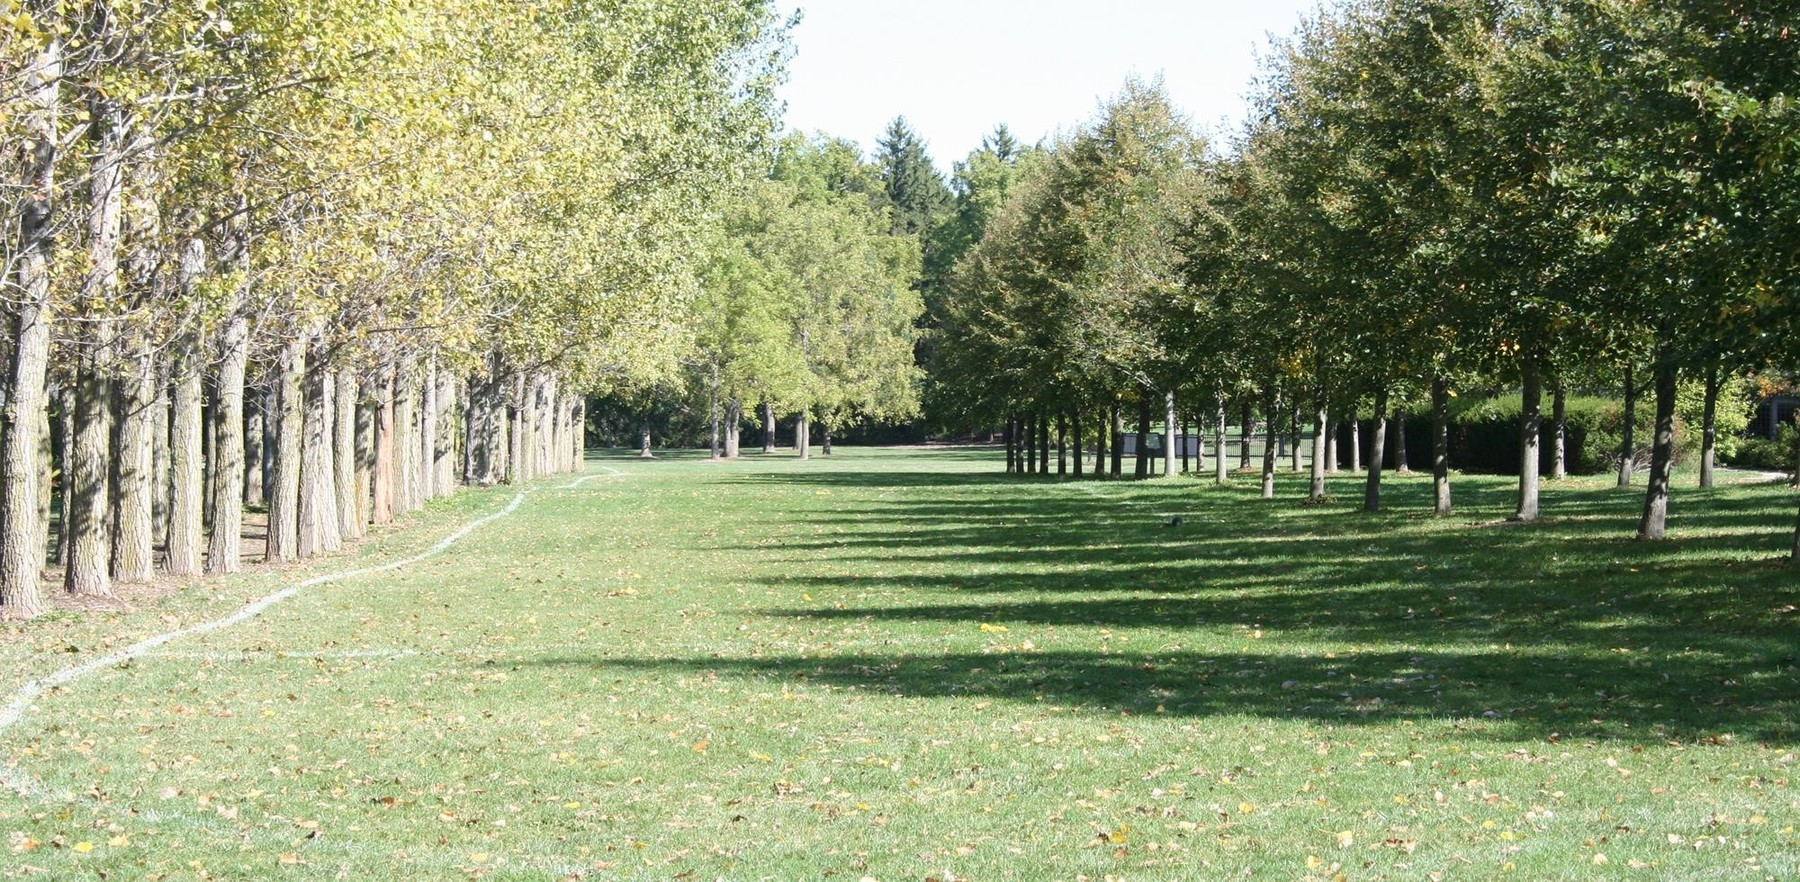 a grassy field at the Arboretum